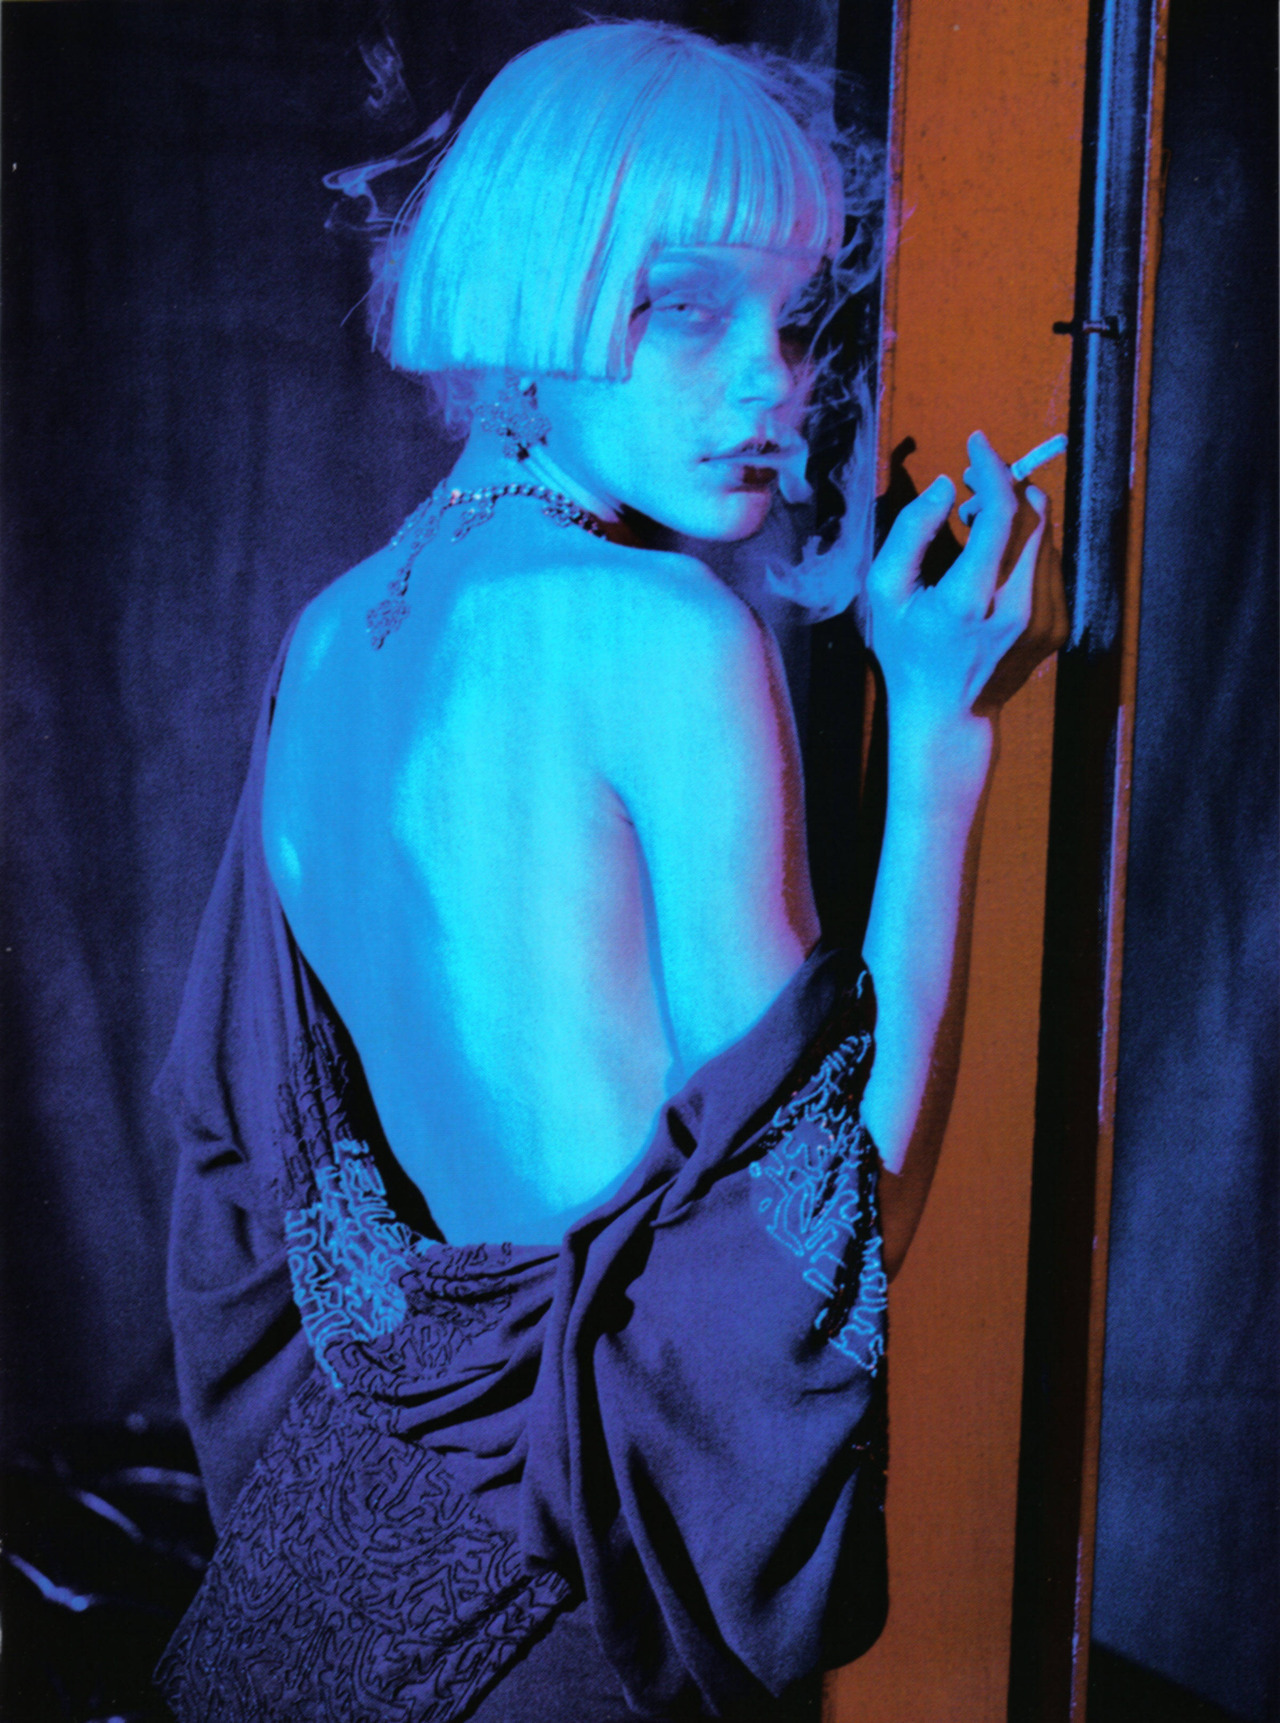 thedoppelganger:  Magazine: Vogue Italia April 2007Photographer: Peter LindberghModel: Jessica Stam